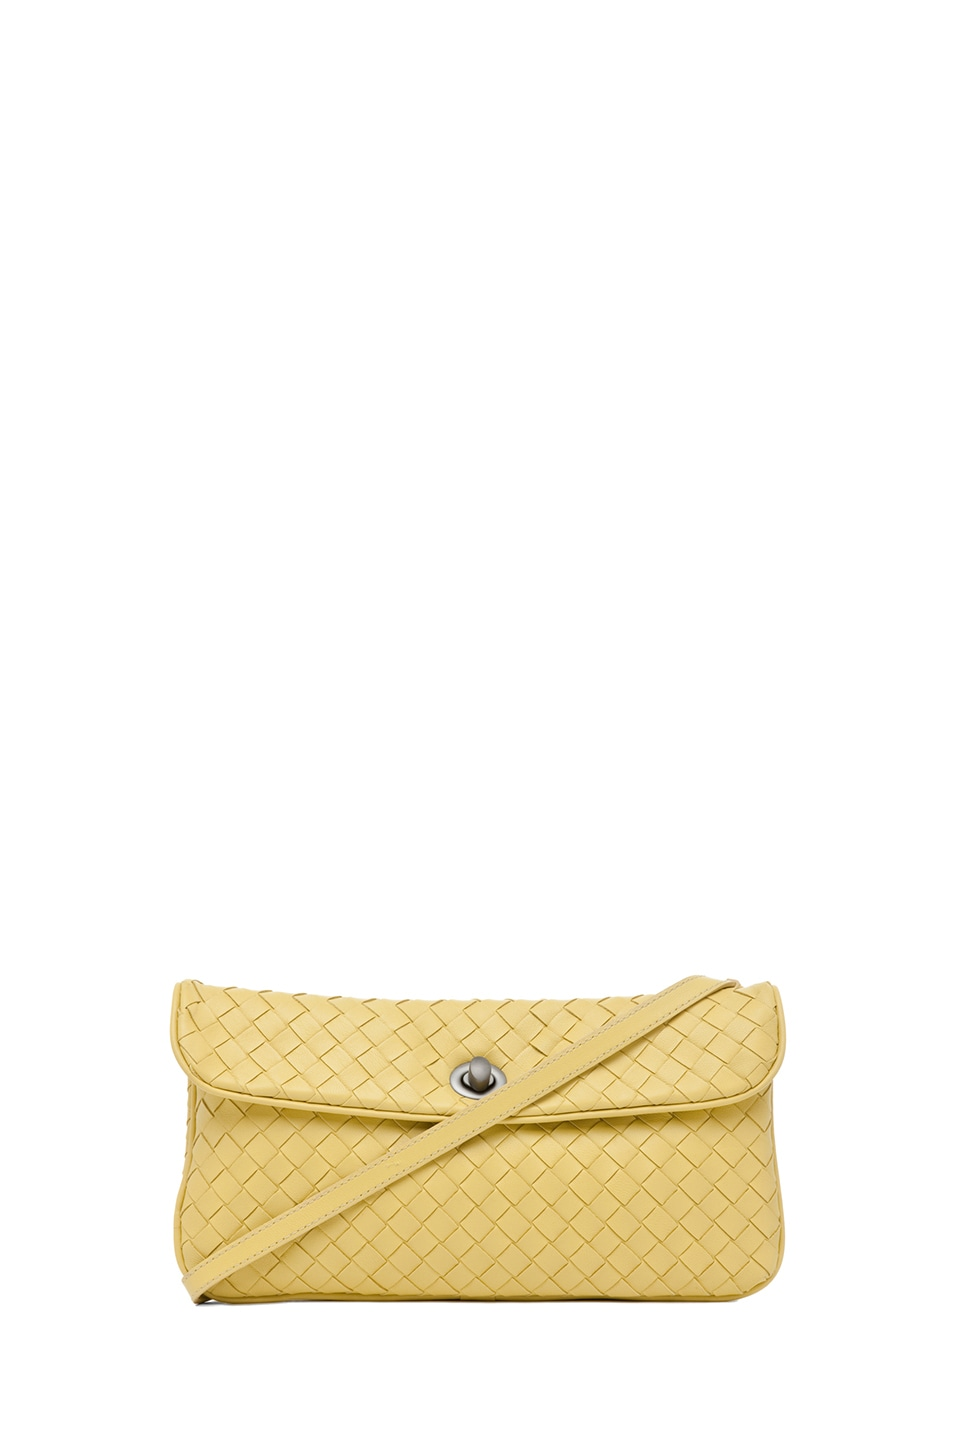 Image 1 of Bottega Veneta Crossbody Bag in Citrus Yellow